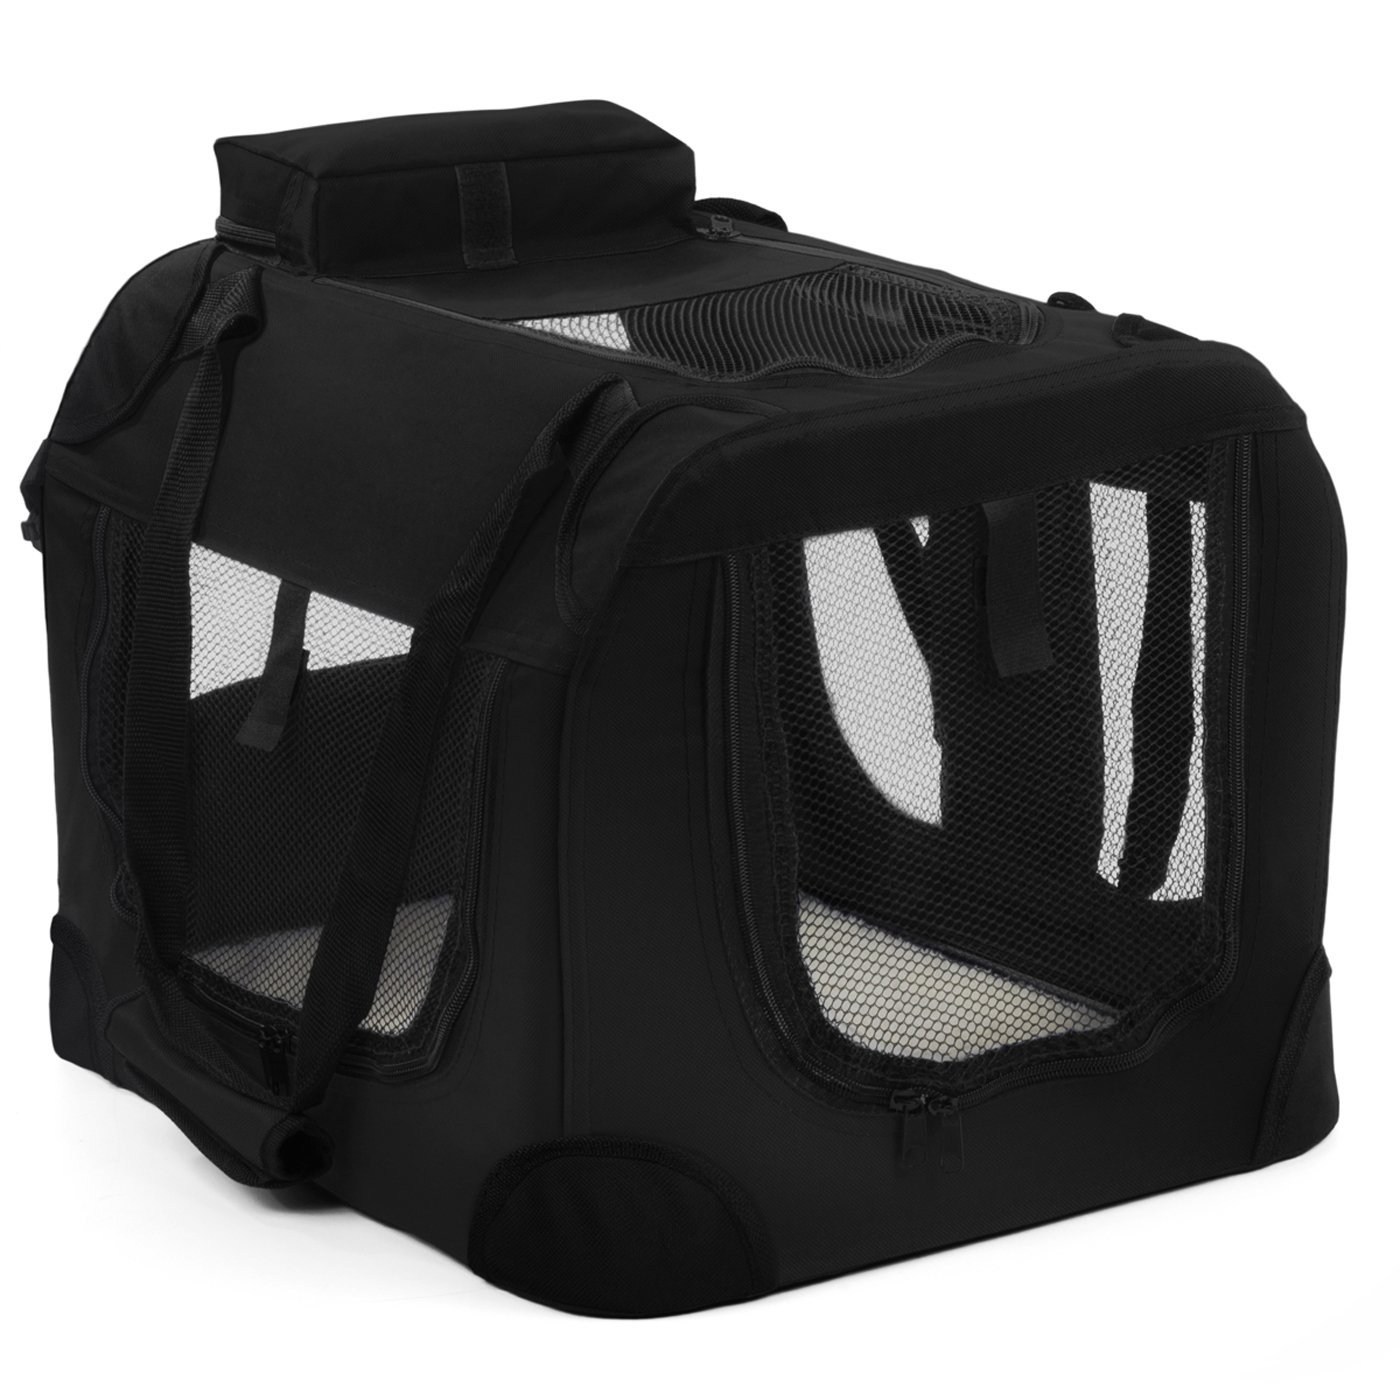 """Paws & Pals Foldable Soft Sided Pet Crate Training Kennel Carrier for Cats and Dogs – 40"""" x 27"""" x 28"""" Inches Black"""